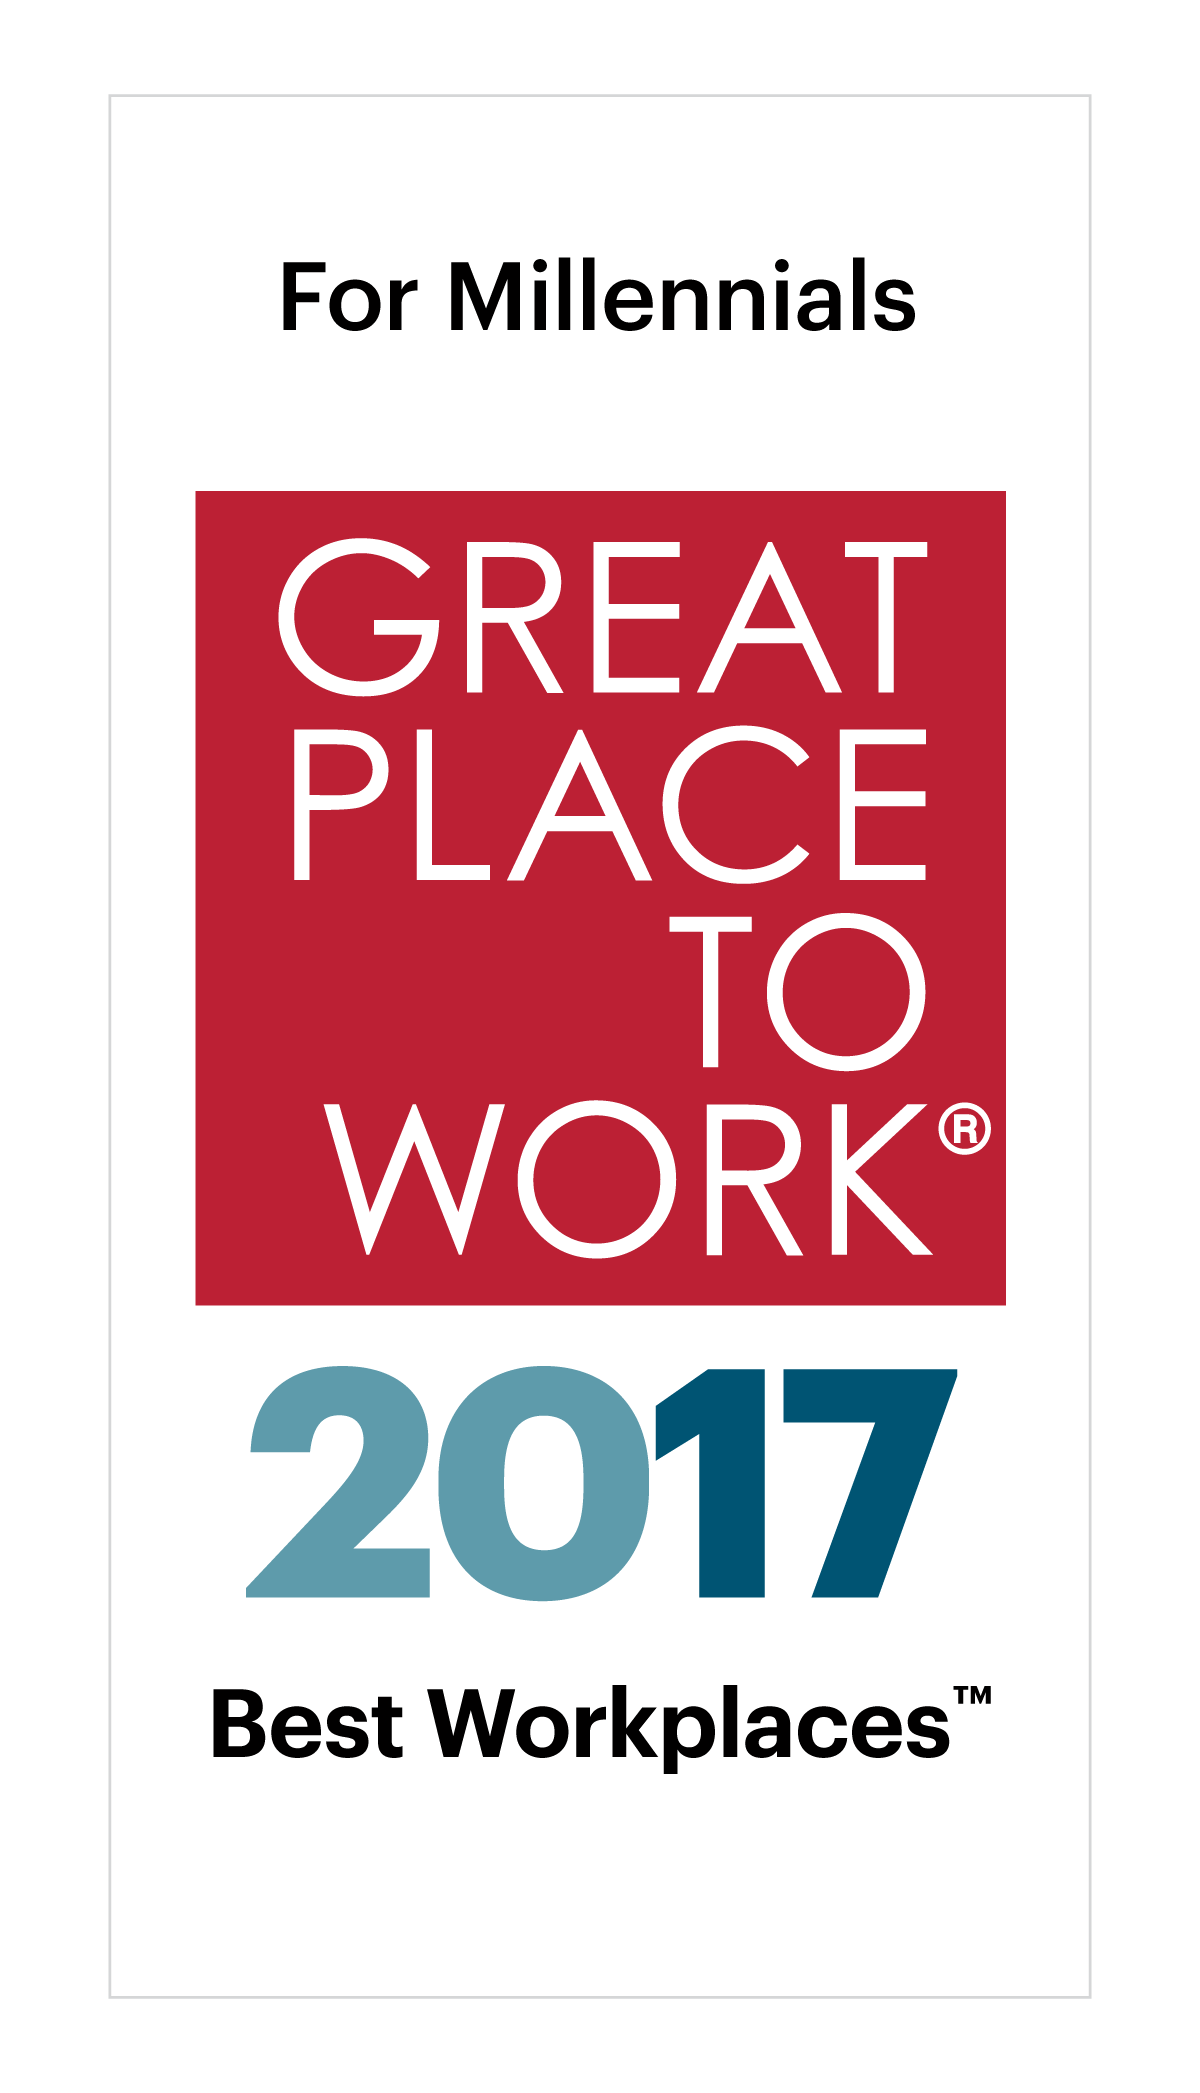 Best Workplaces for Millennials 2017 Image